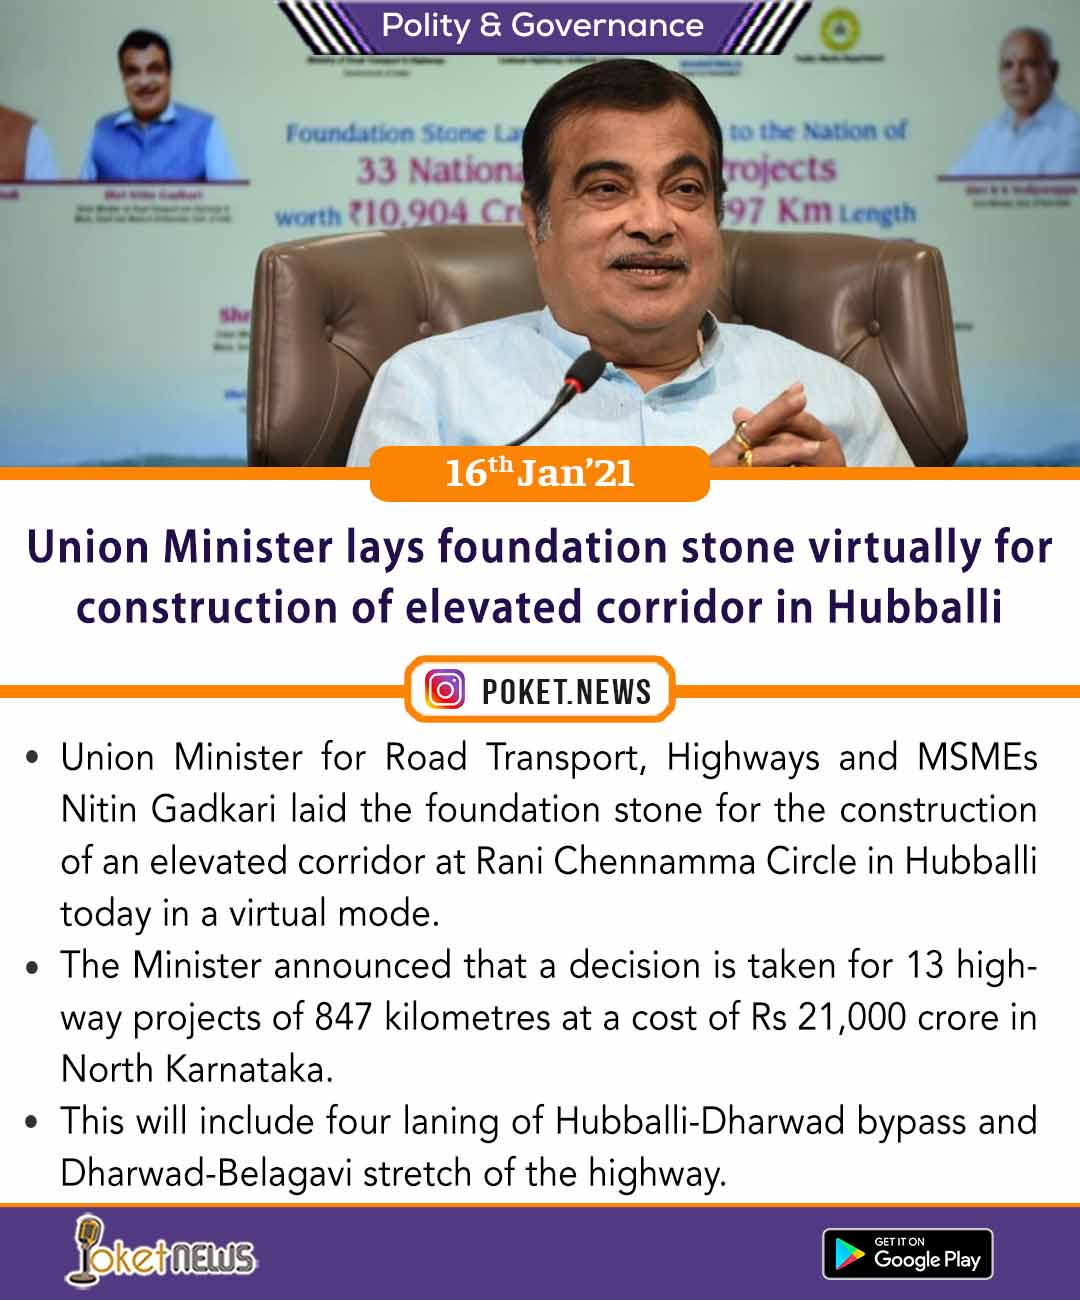 Union Minister lays foundation stone virtually for construction of elevated corridor in Hubballi, Karnataka